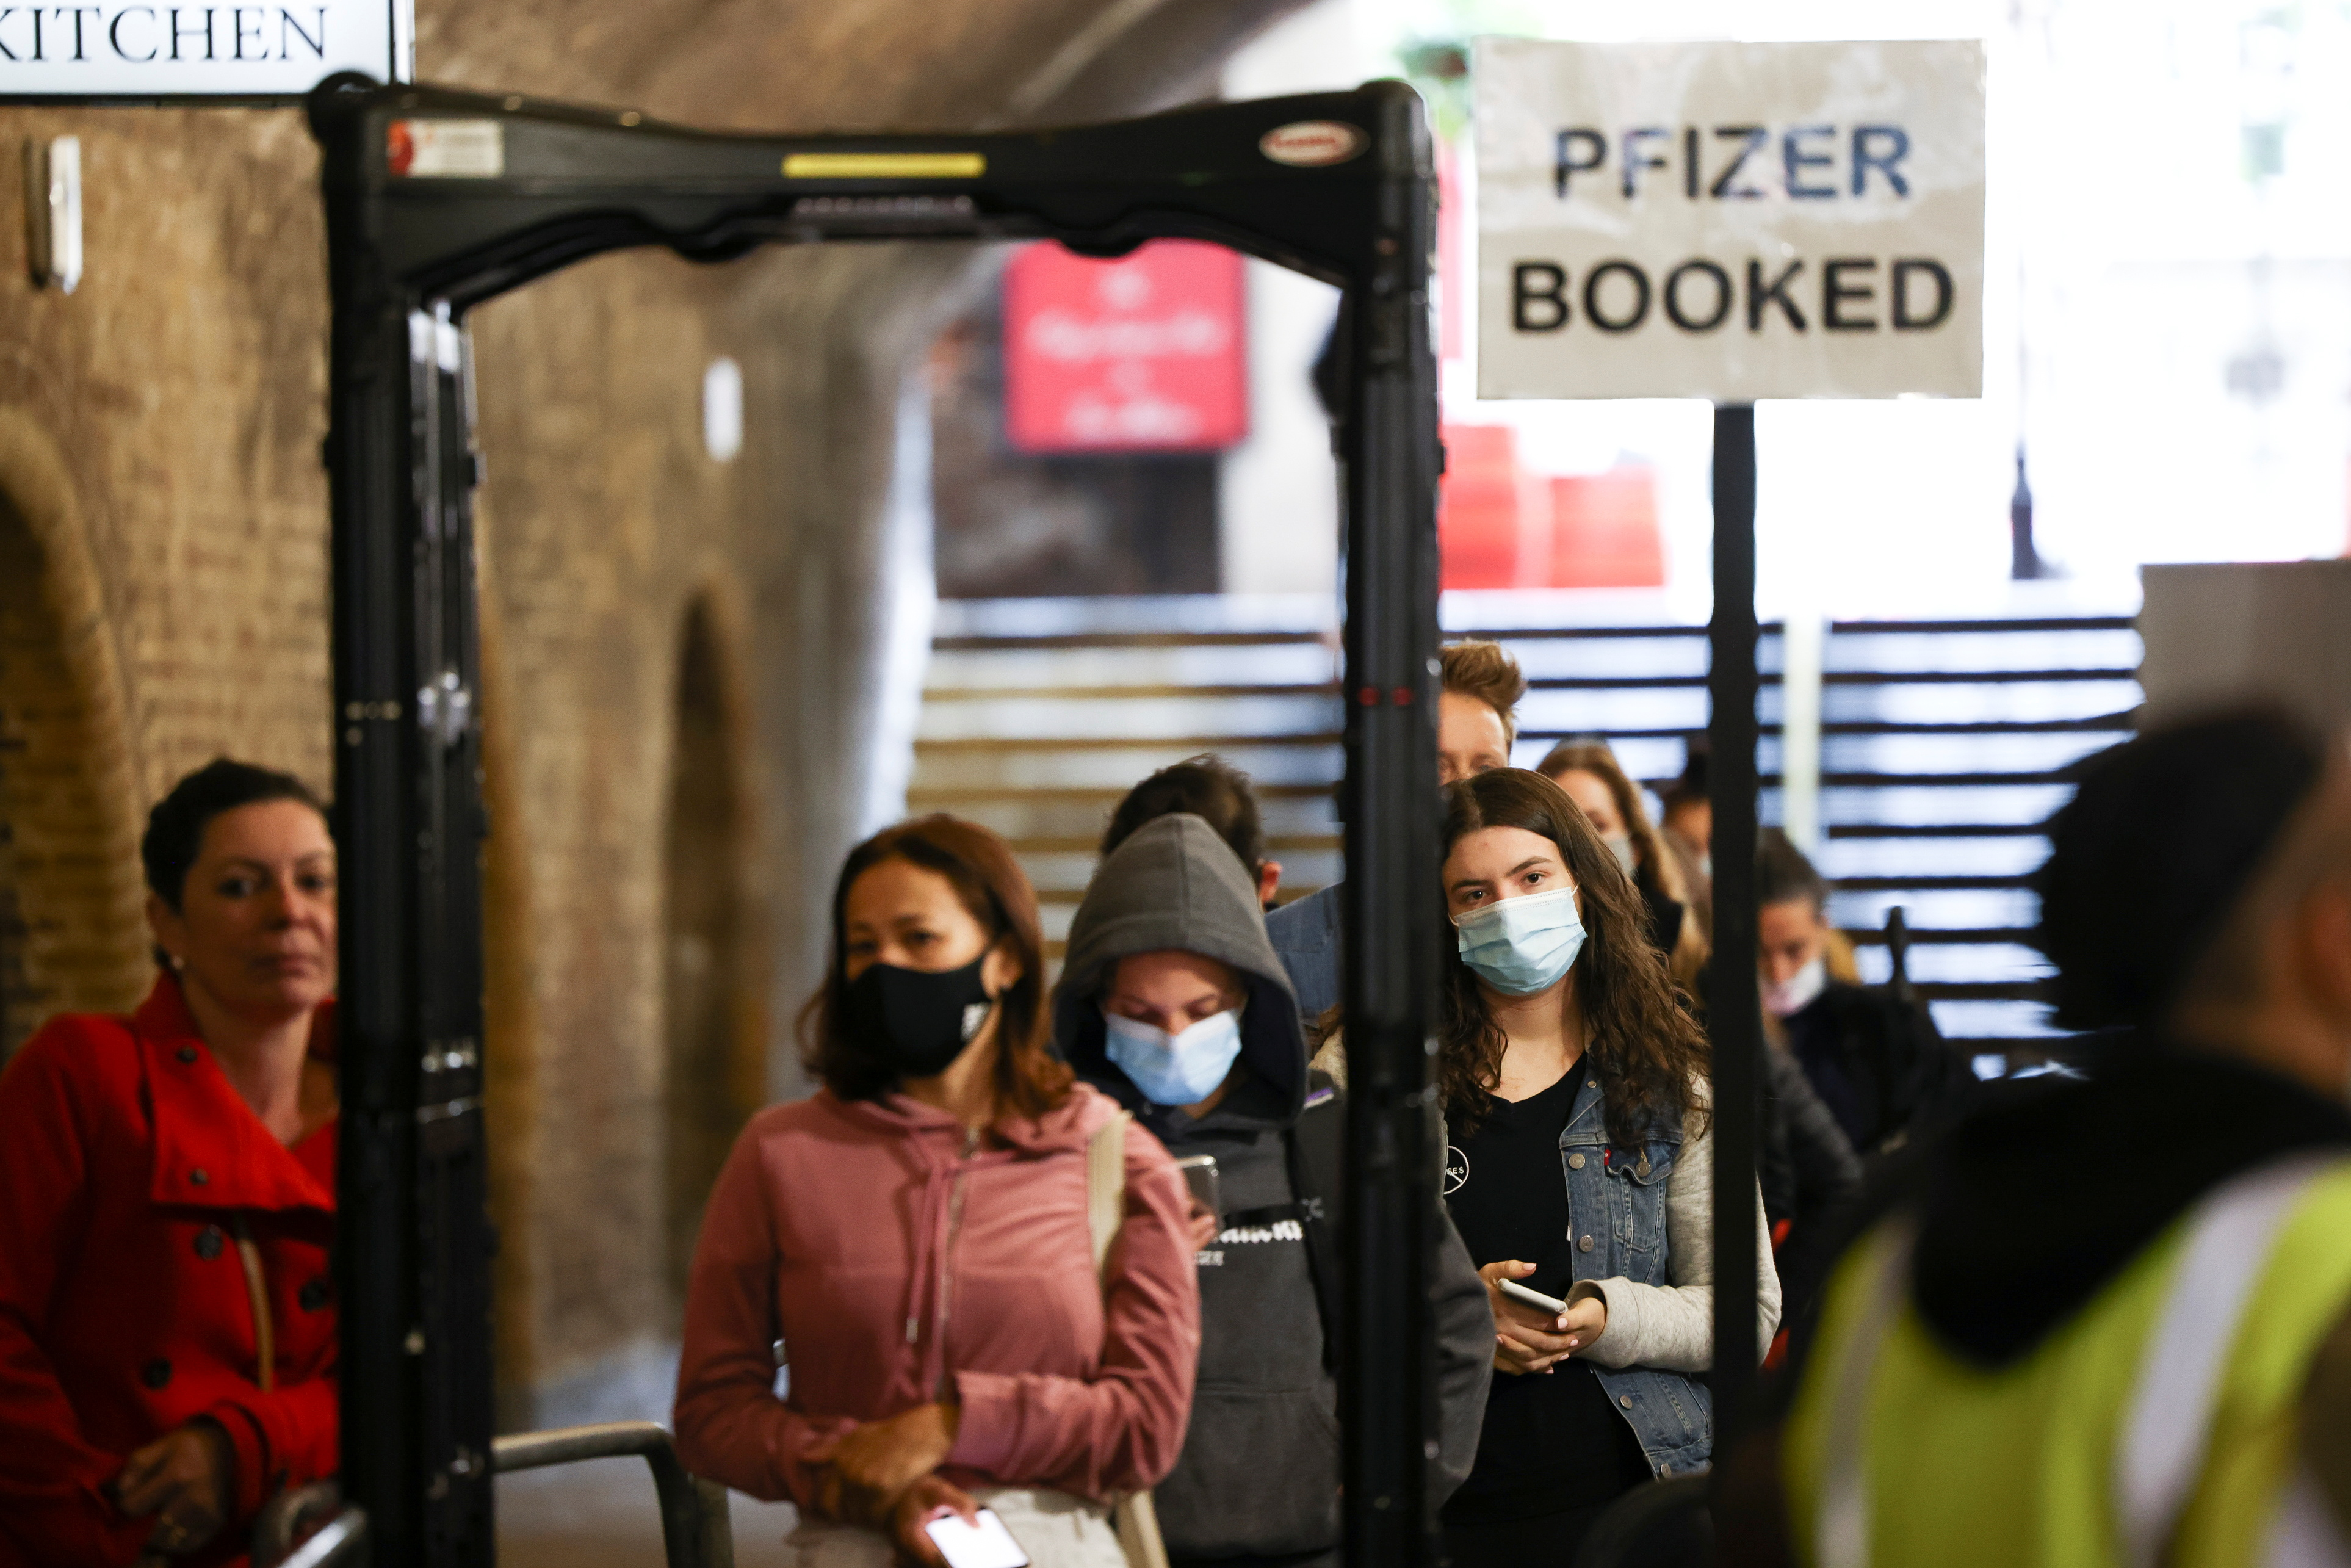 People queue to receive a dose of the Pfizer BioNTech vaccine at an NHS vaccination centre hosted at the Heaven nightclub, amid the coronavirus disease (COVID-19) pandemic, in London, Britain, August 8, 2021. REUTERS/Henry Nicholls